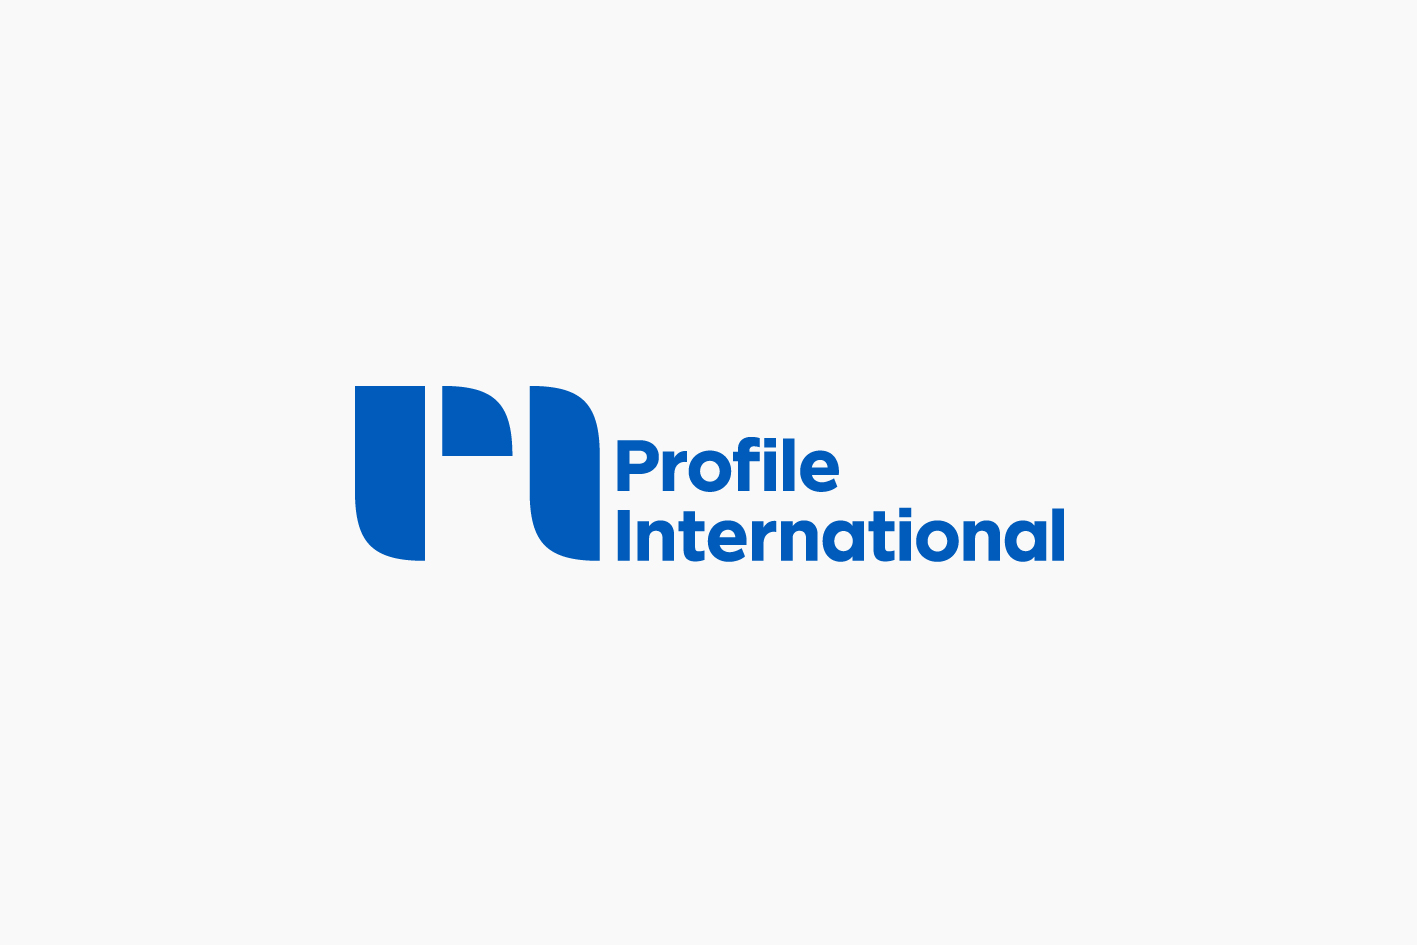 hh_profile_international_01